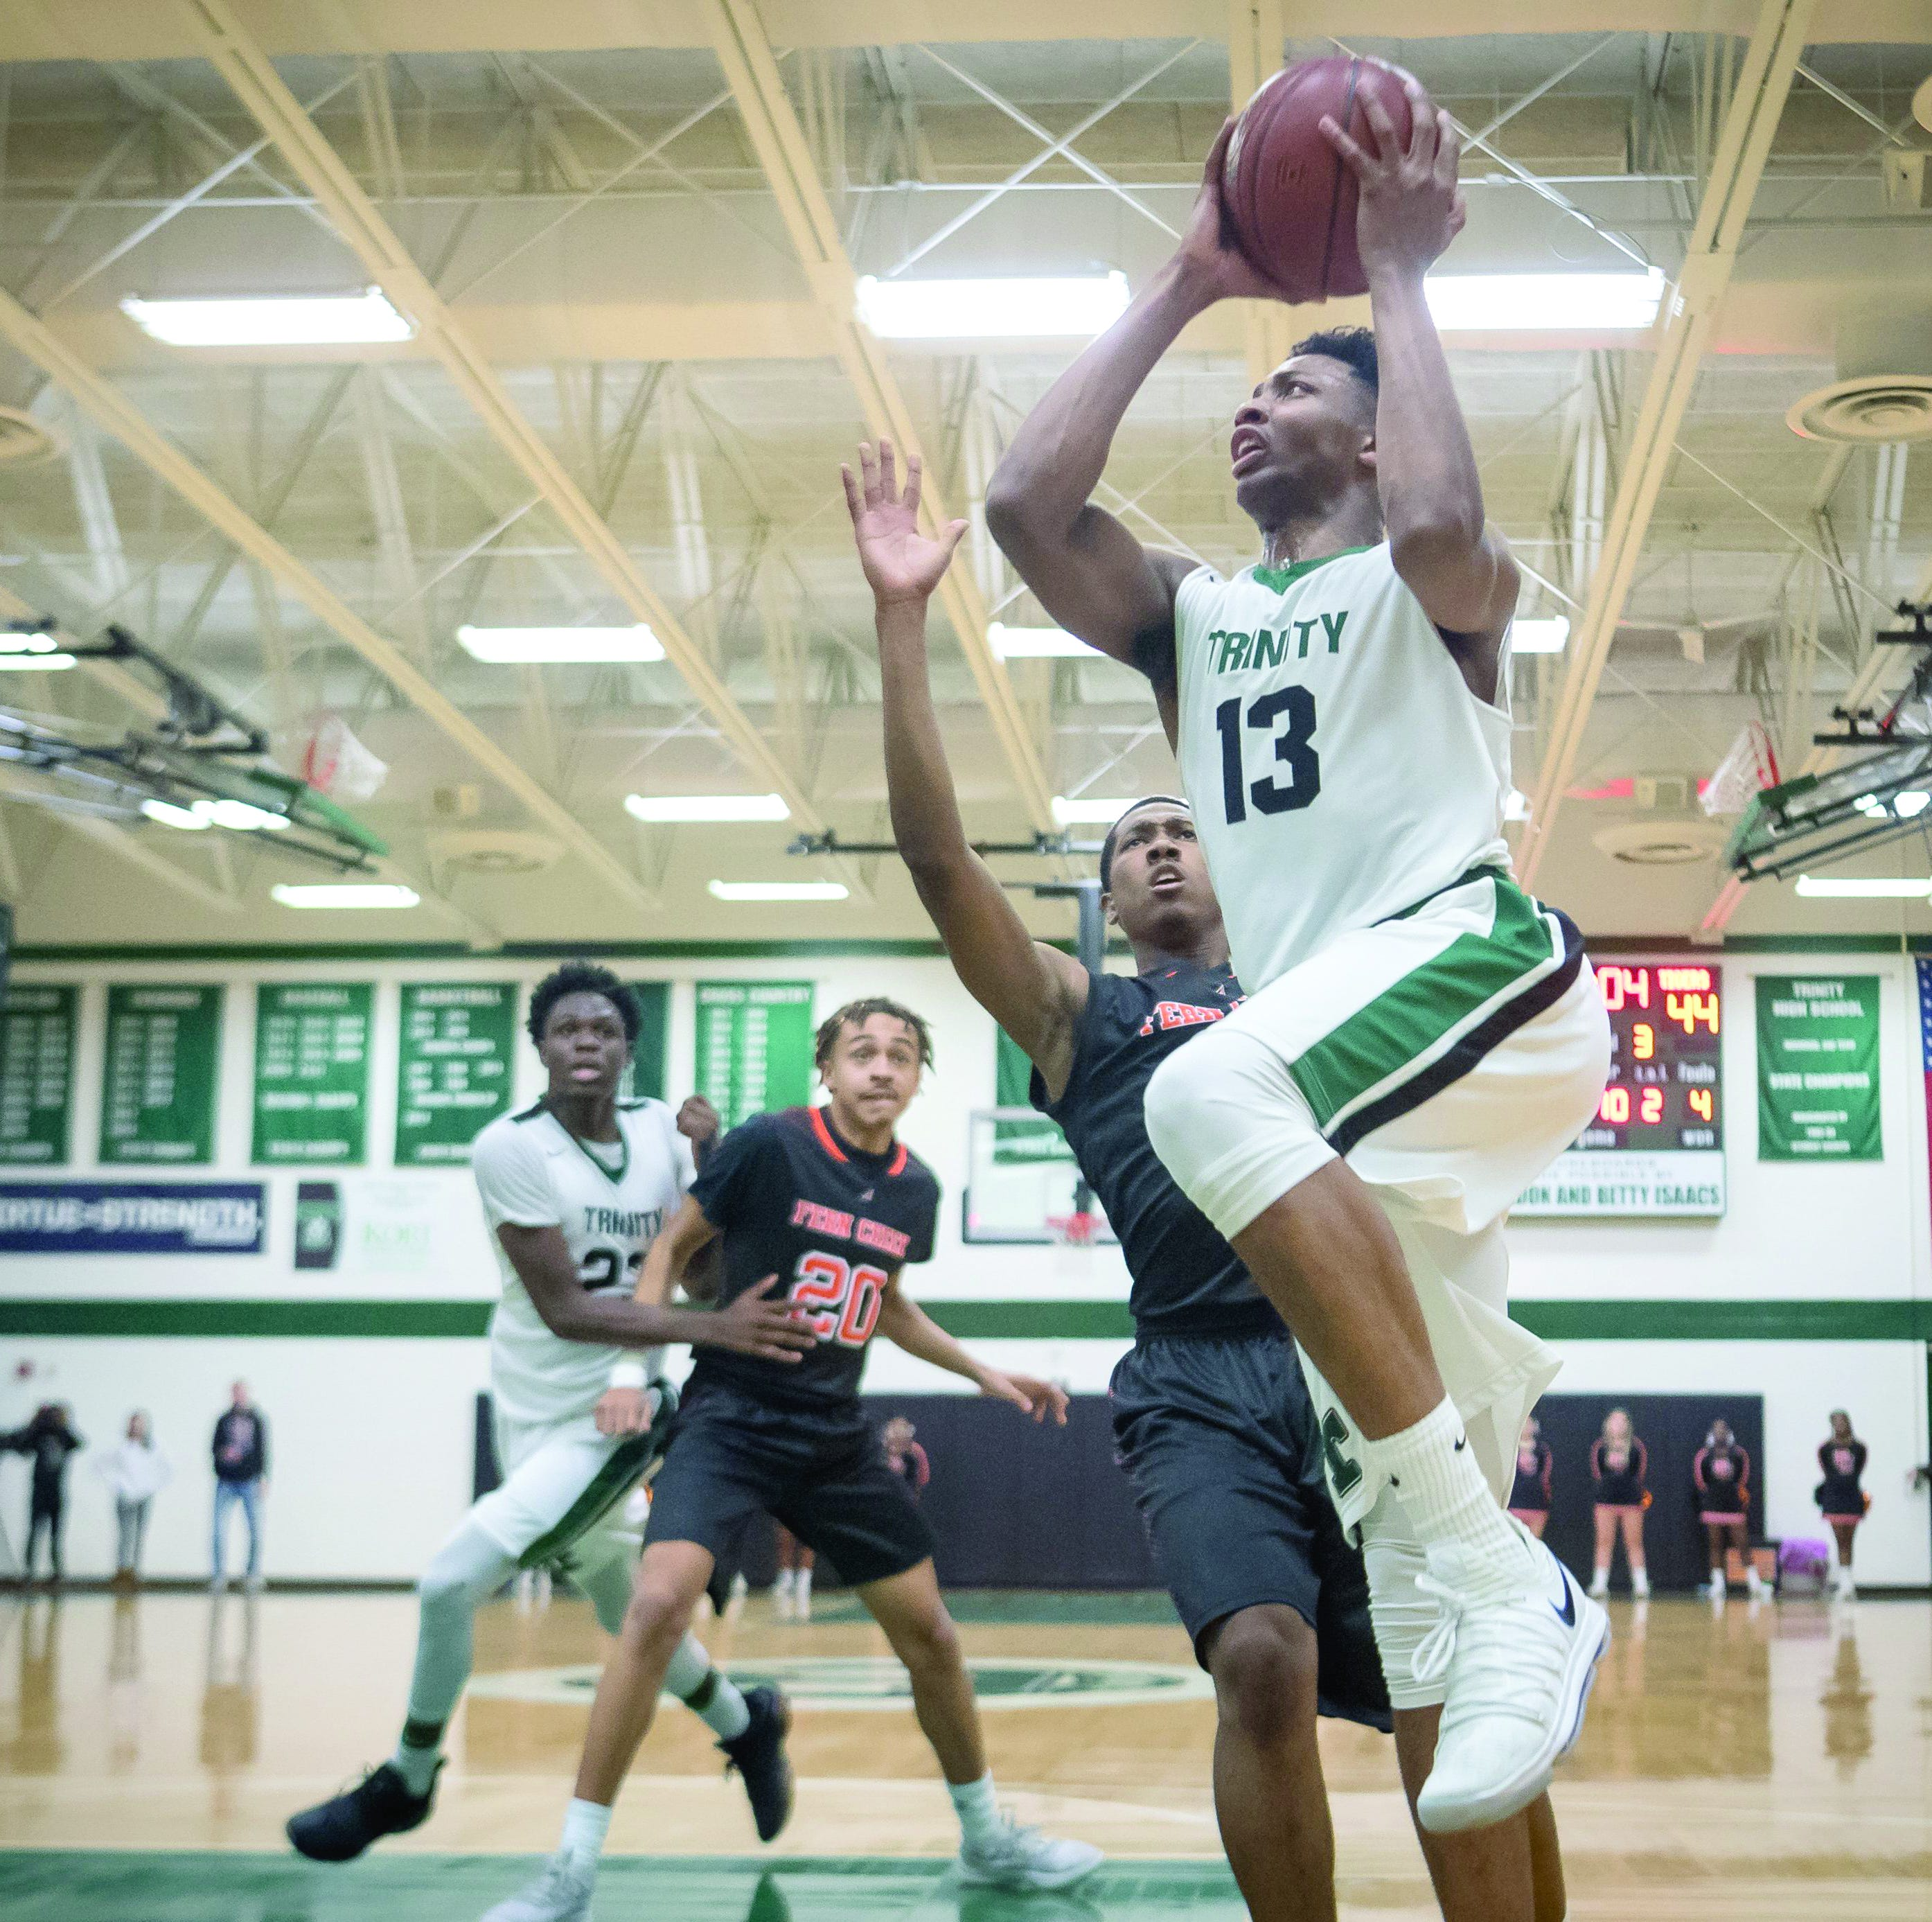 Trinity basketball player David Johnson commits to Louisville — again